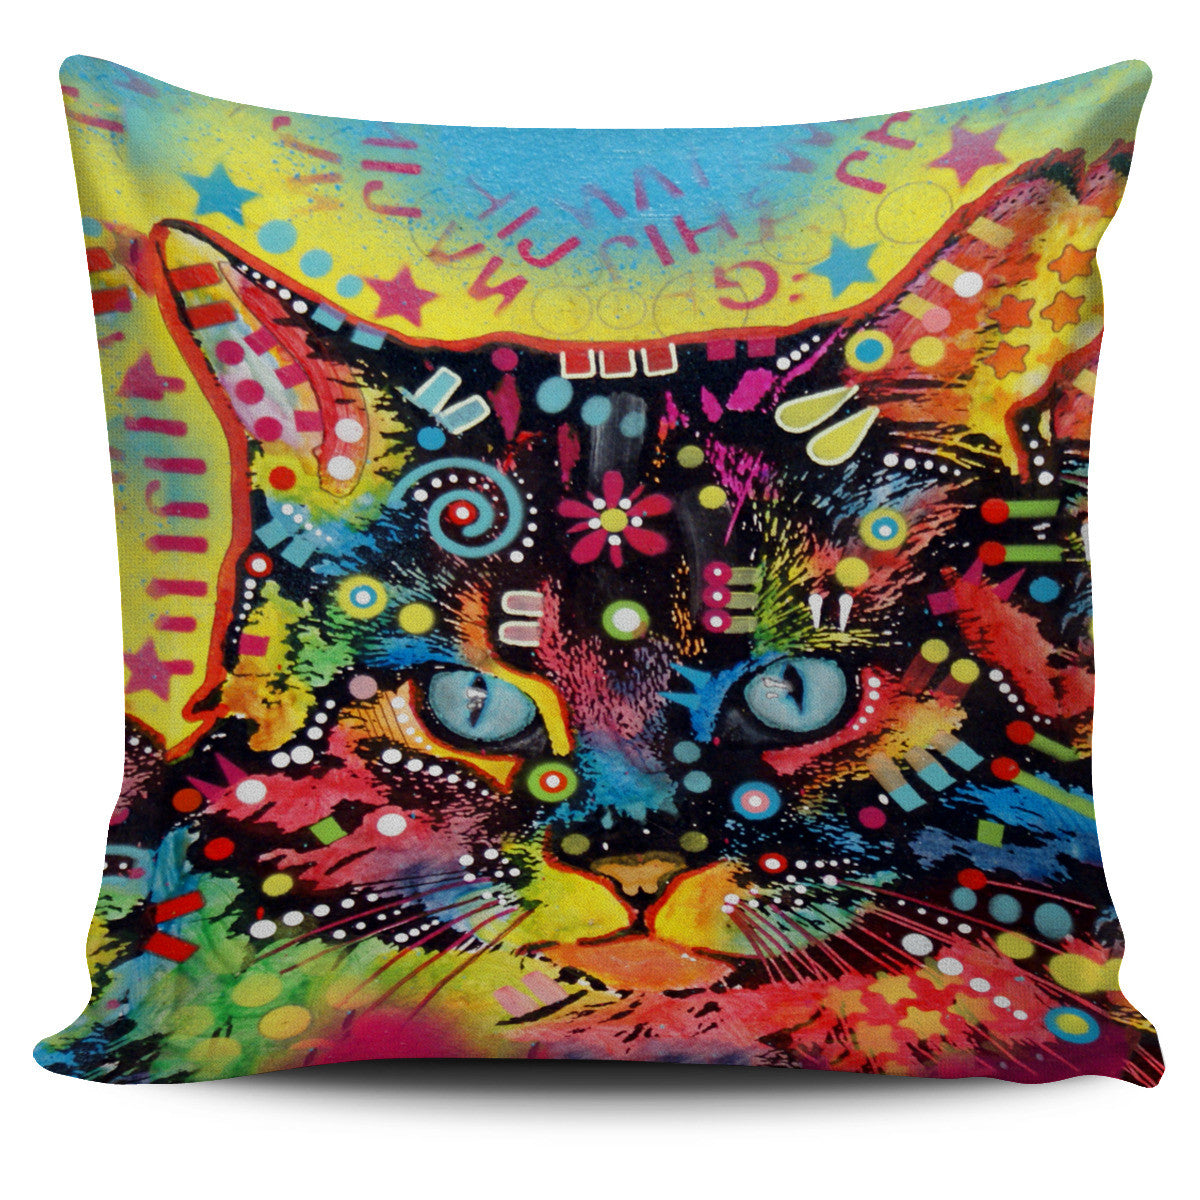 Cat Series Pillow Covers Offer